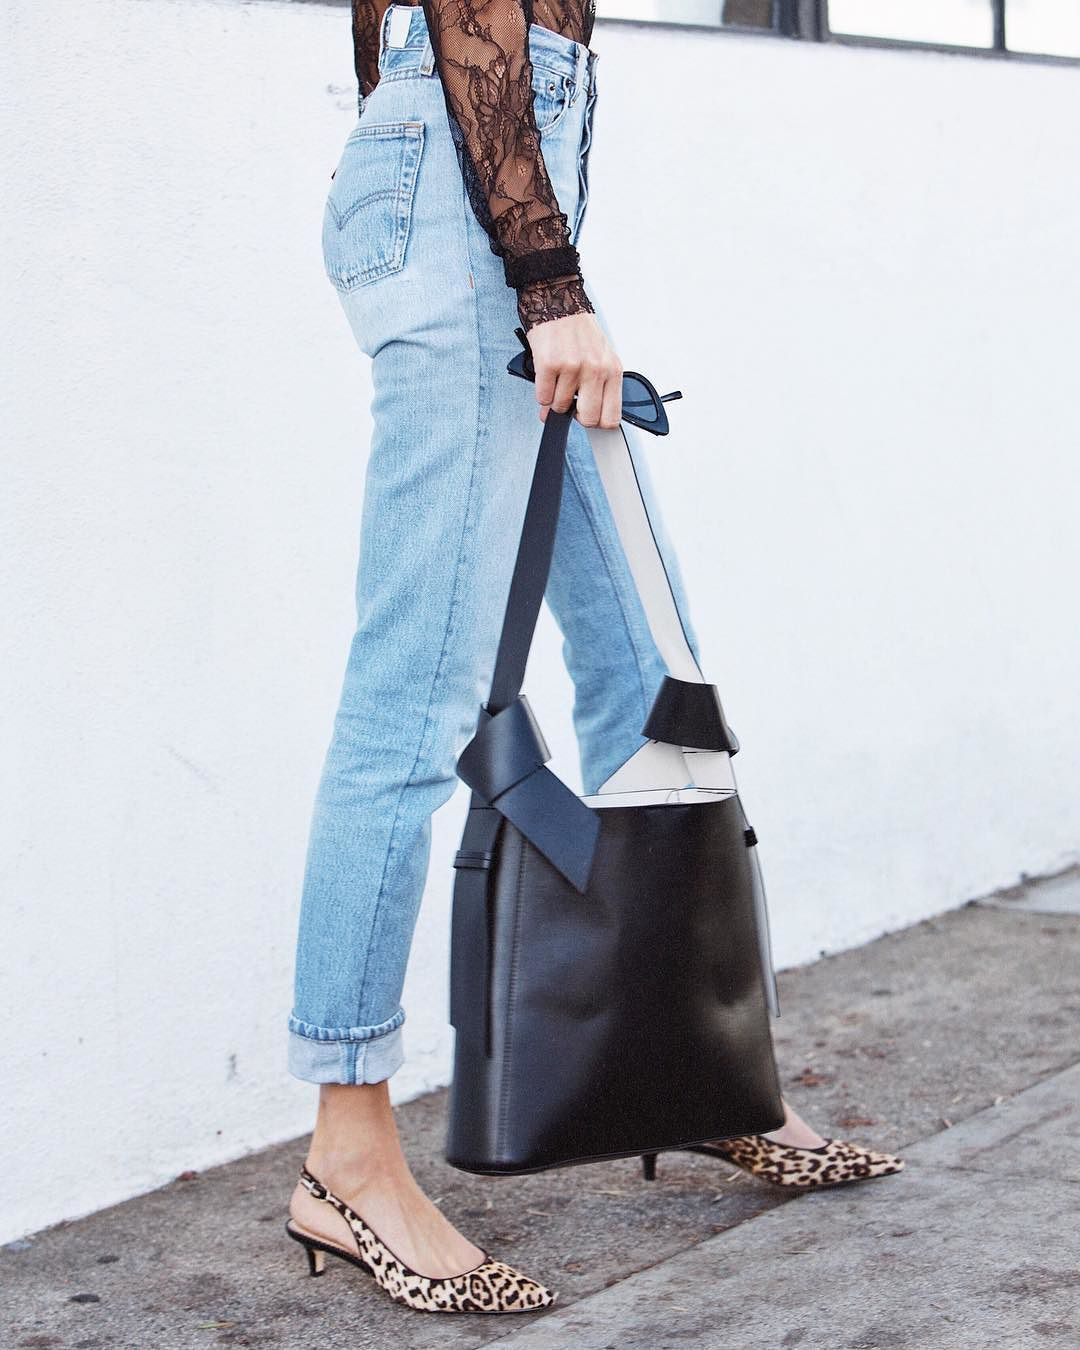 914a76c19f0 Kelsey White spotted in our Ludlow Slingback Kitten Heel.